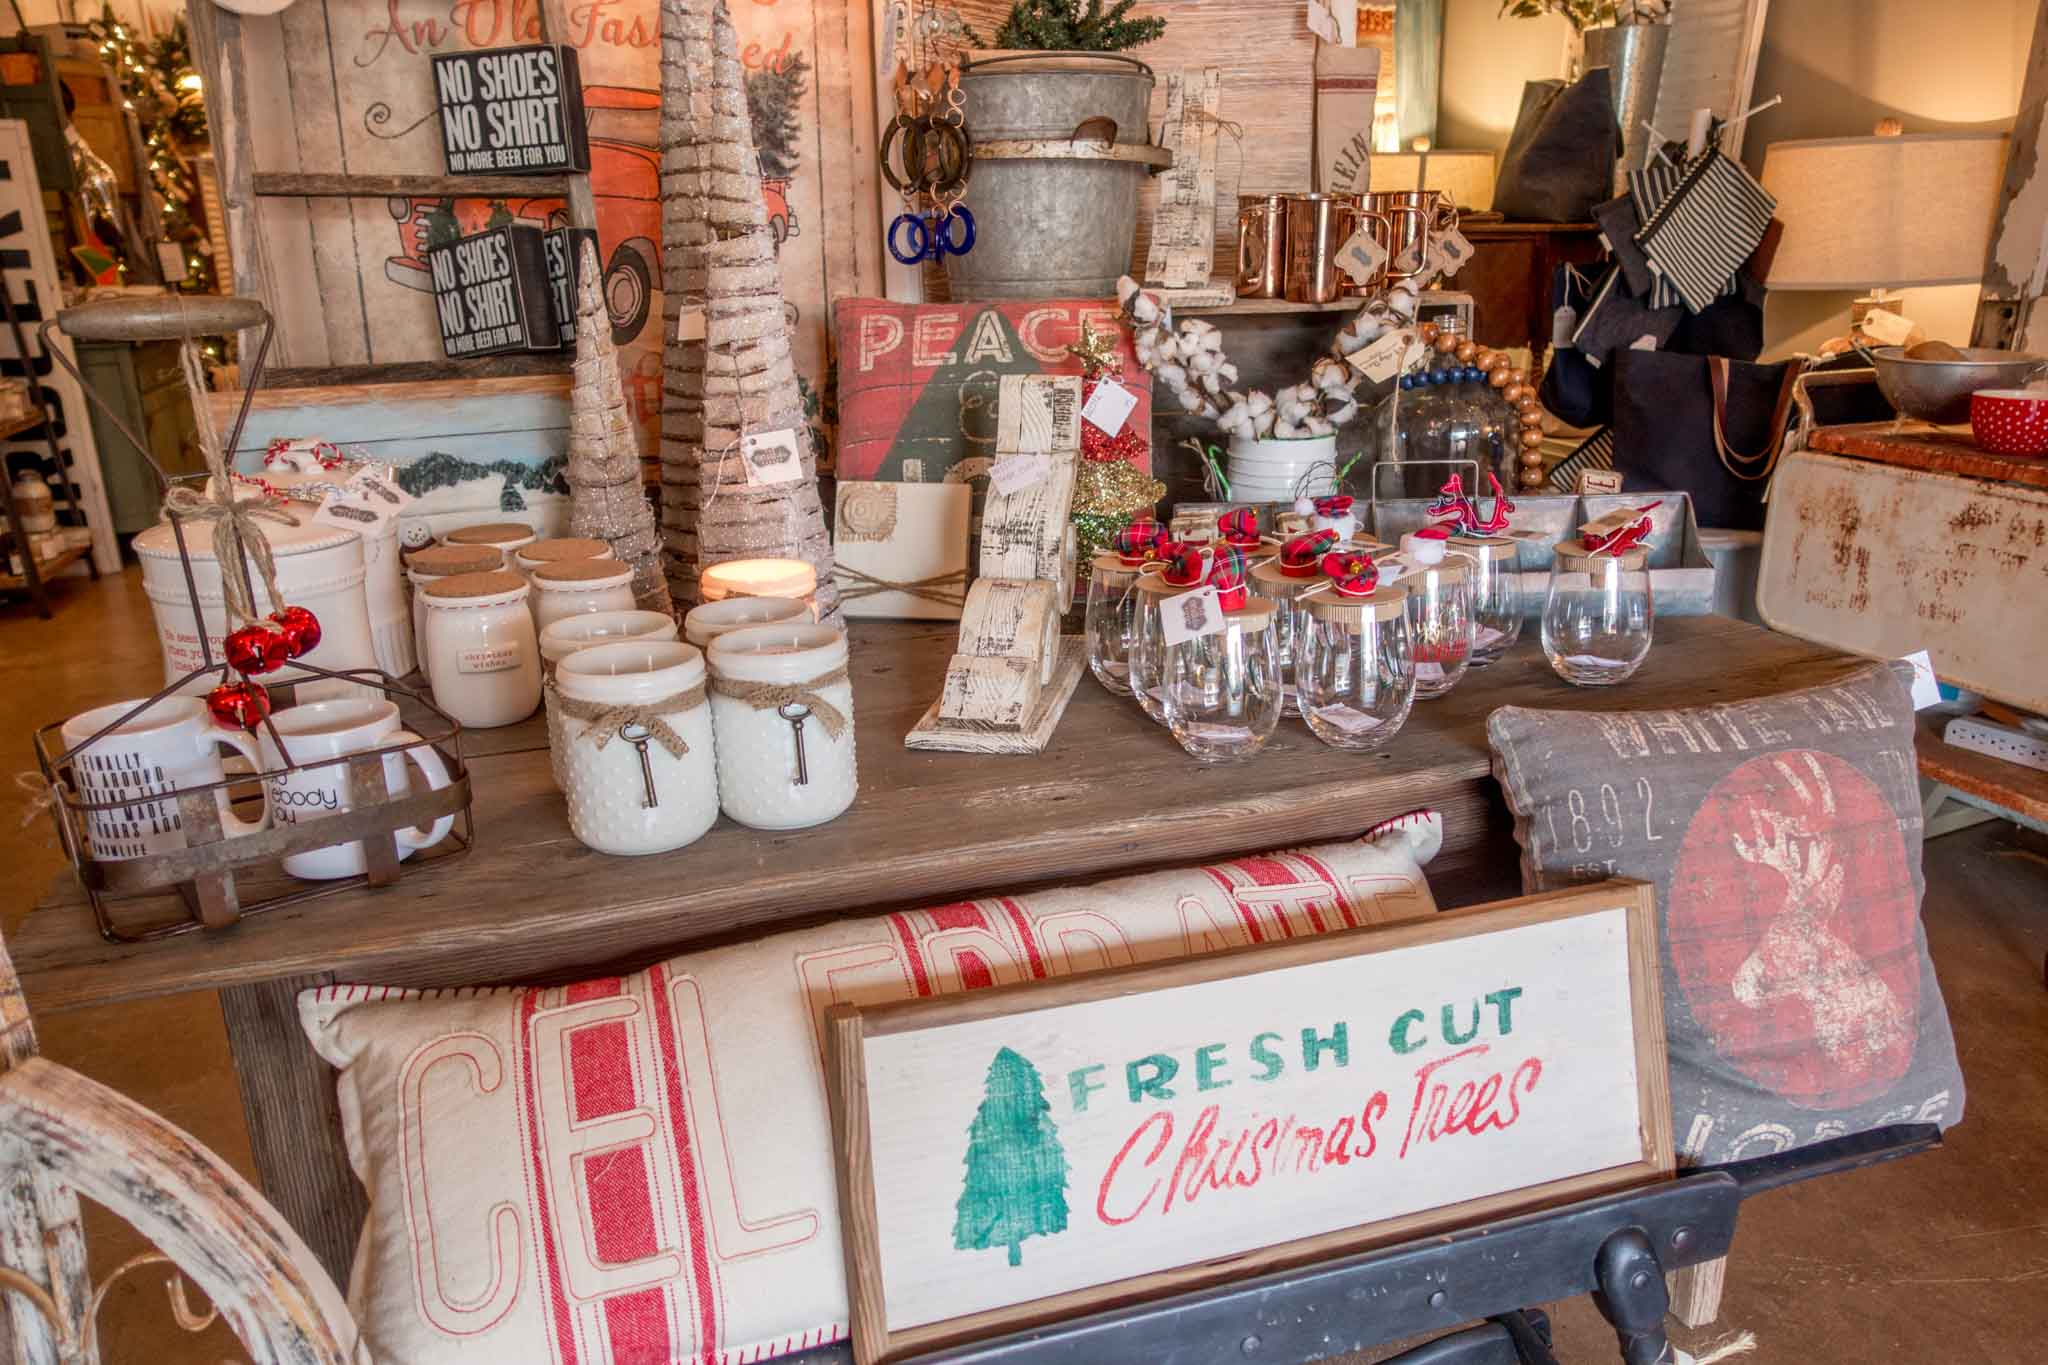 Check out the great shops like Vintage Chic Market in downtown Winston Salem, North Carolina